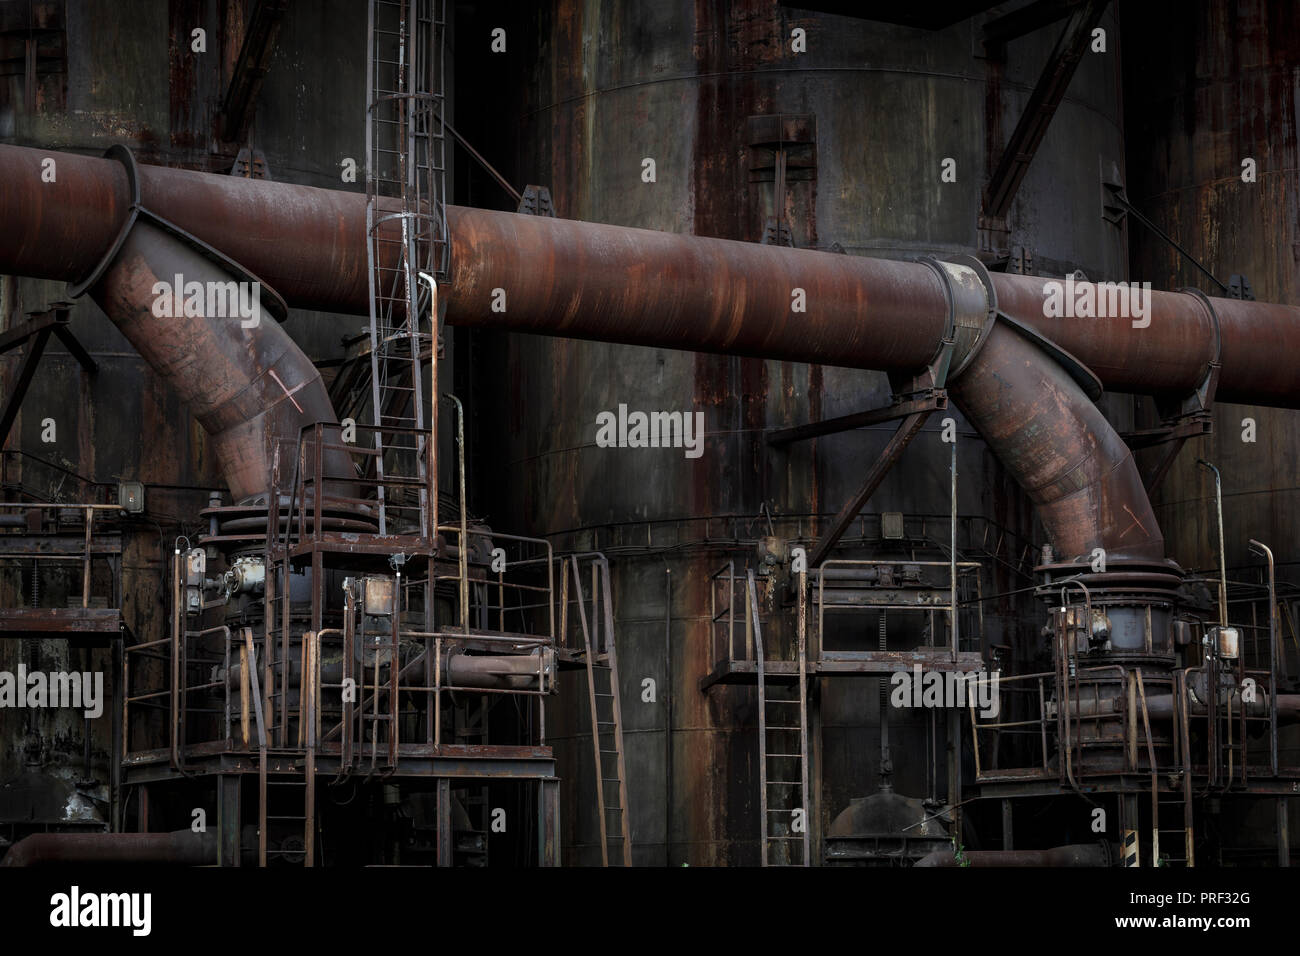 Ostrava, Czech Republic - August 21, 2018: Blast furnace in Lower Vitkovice, a national site of industrial heritage consisting of a unique collection  - Stock Image